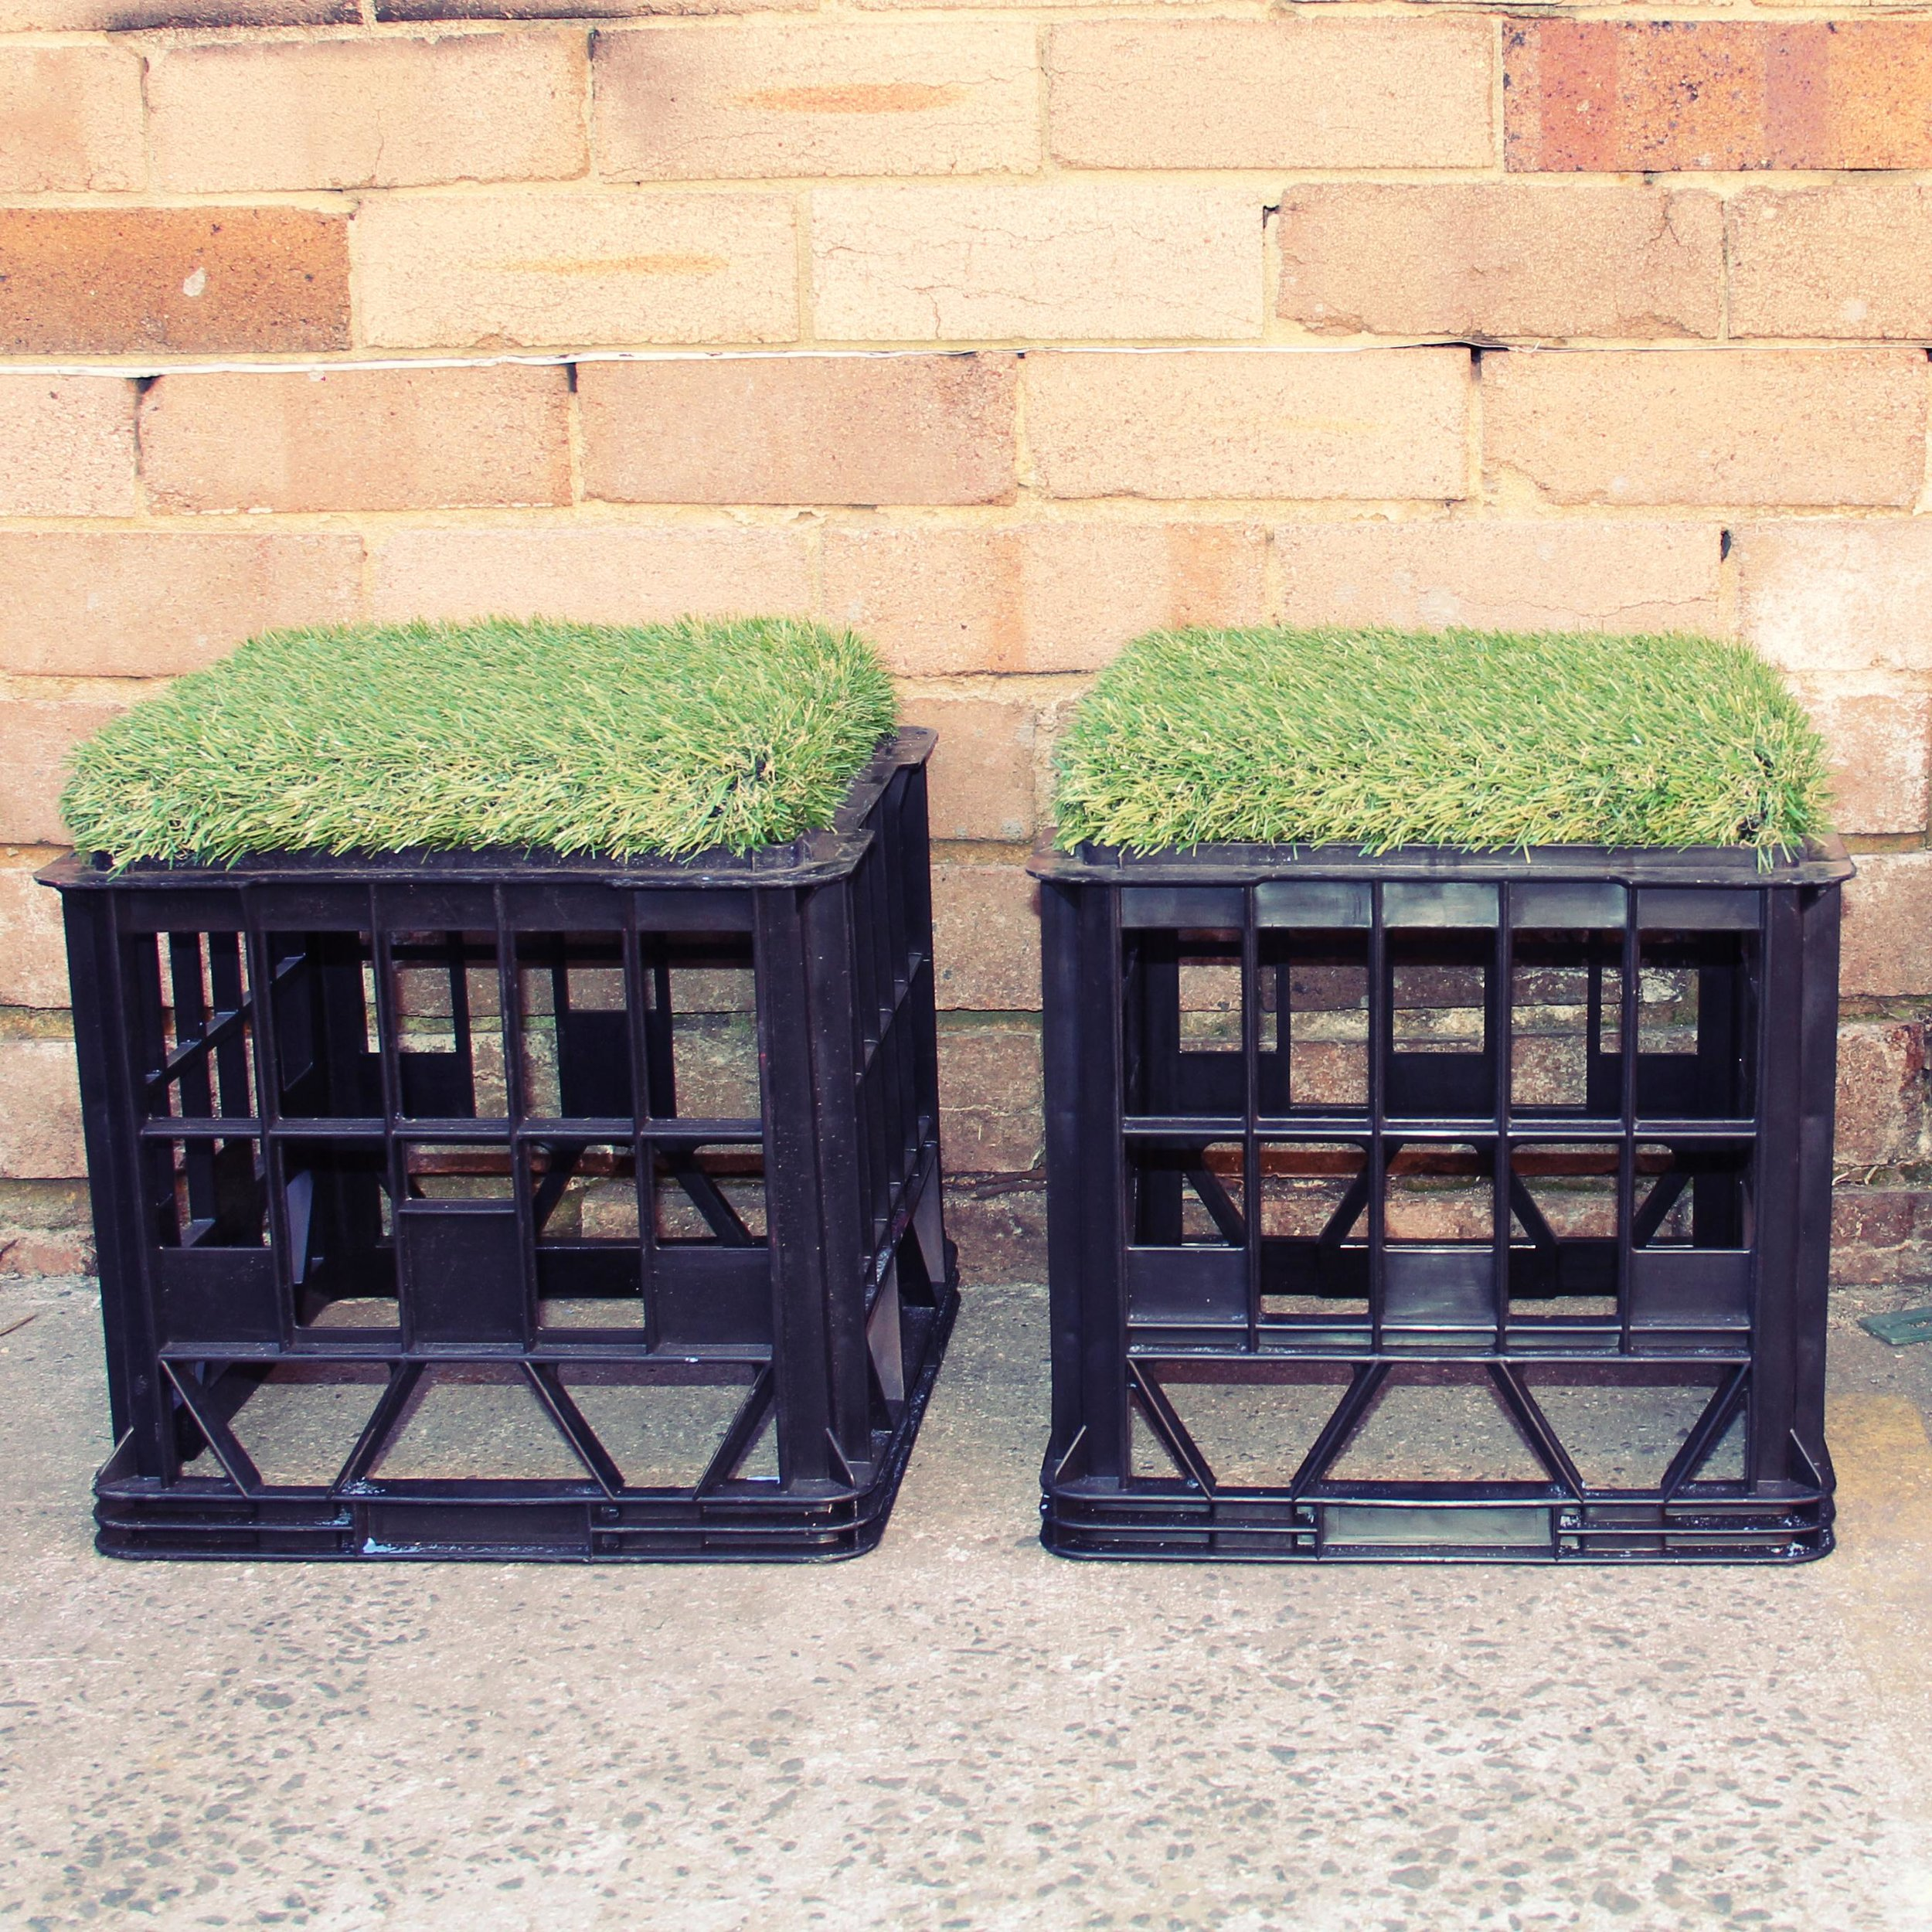 Milk crate seats with astro-turf cushion - up to x100 available